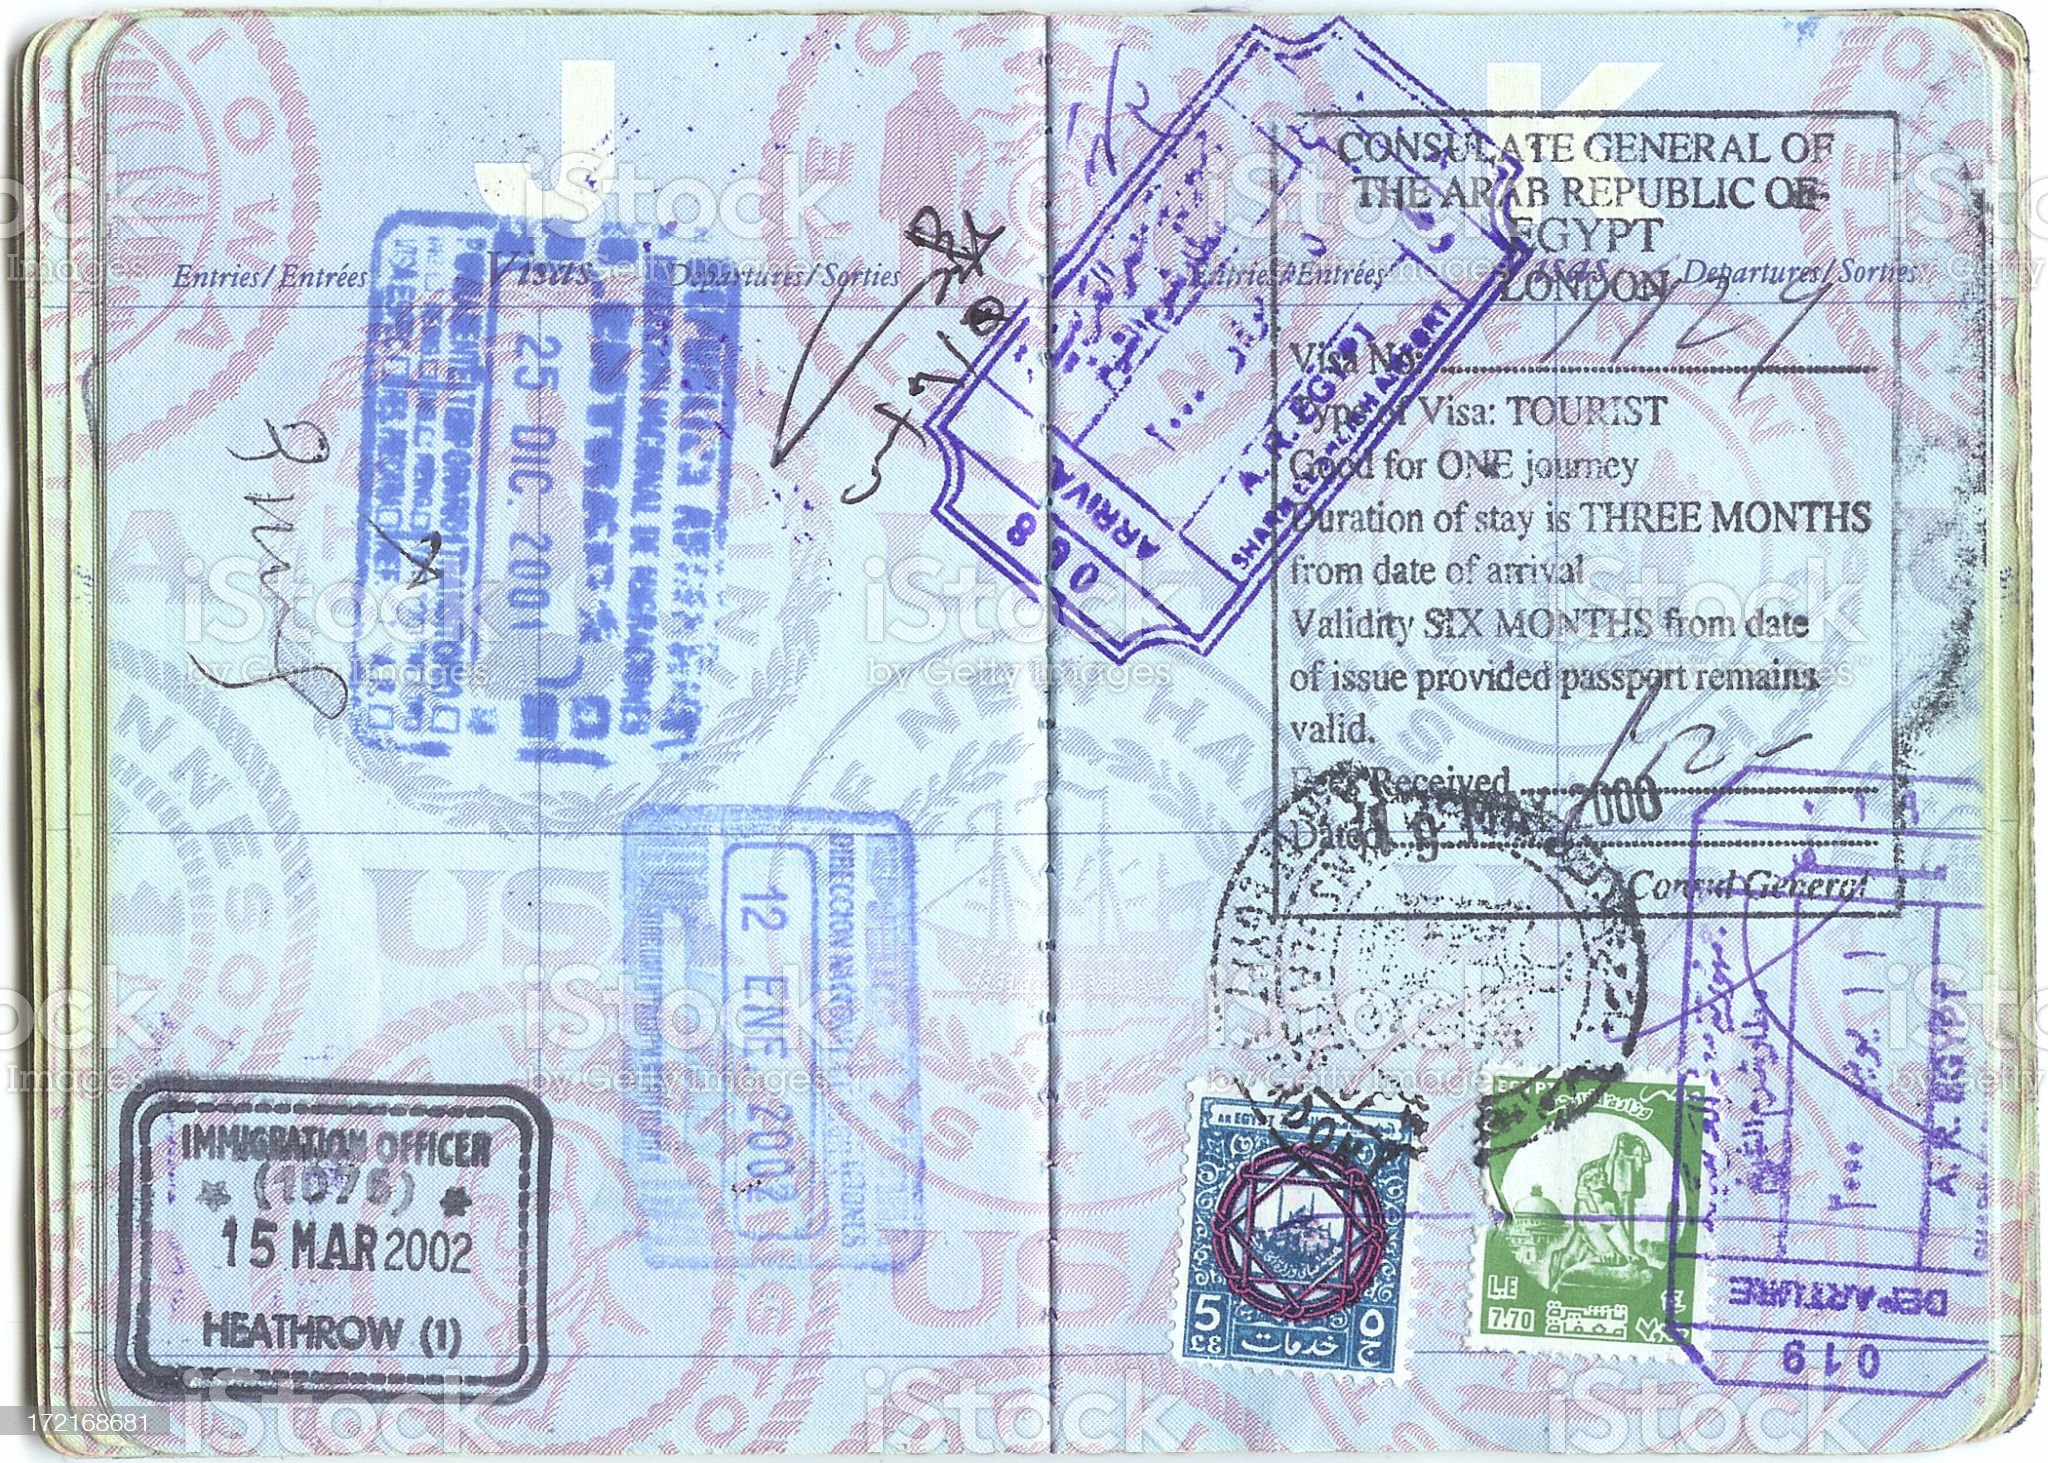 Passport Stamps royalty-free stock photo